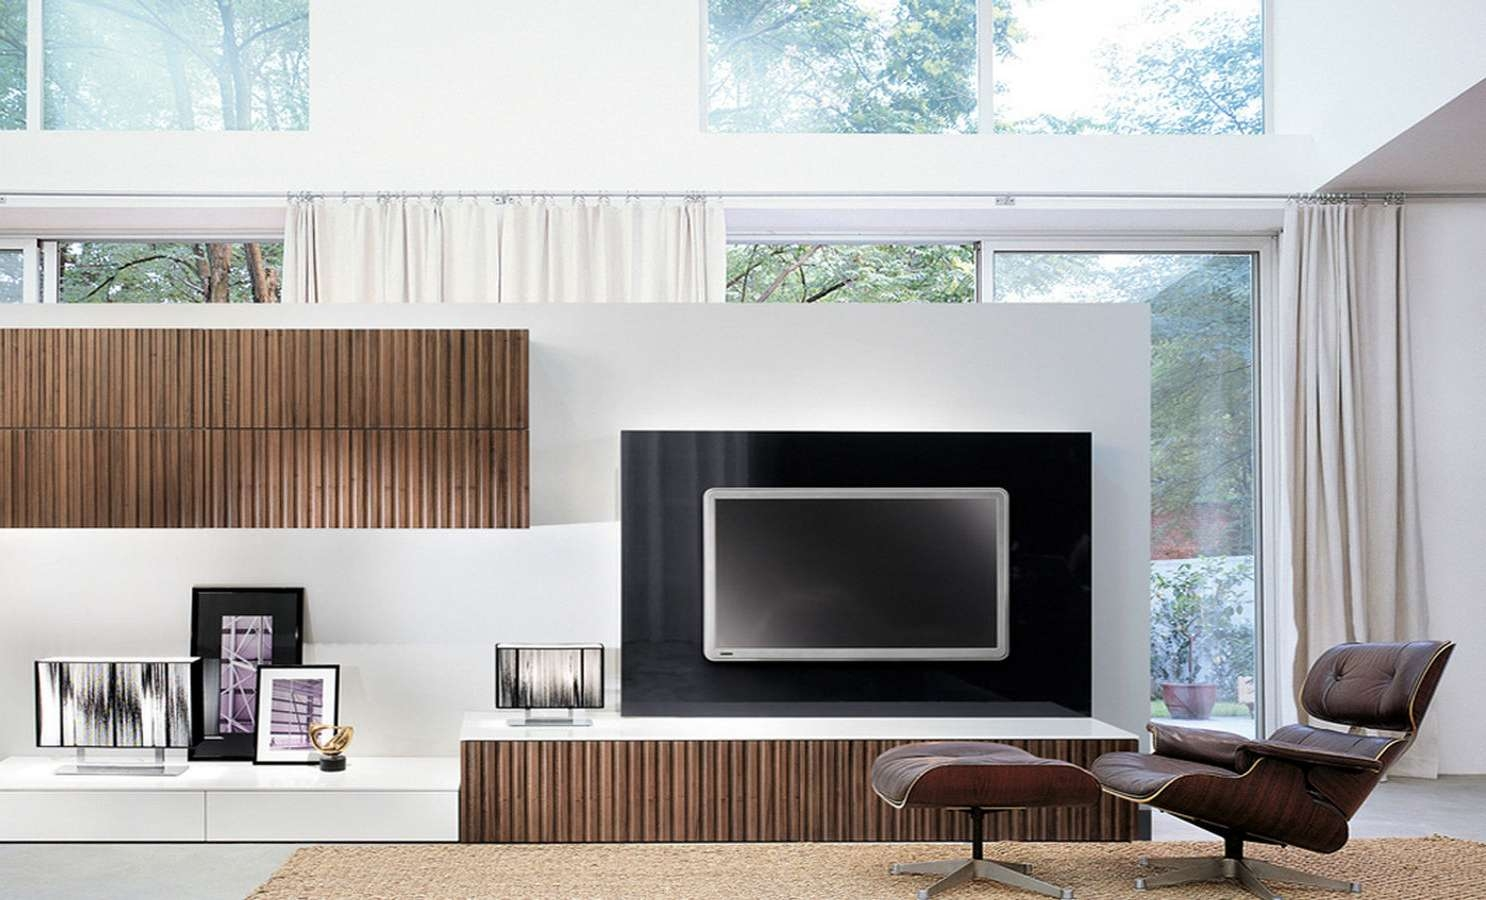 Excellent Tv Wall Unit Open System Tv Wall Unit Open System Jesse Intended For Full Wall Tv Cabinets (View 19 of 20)